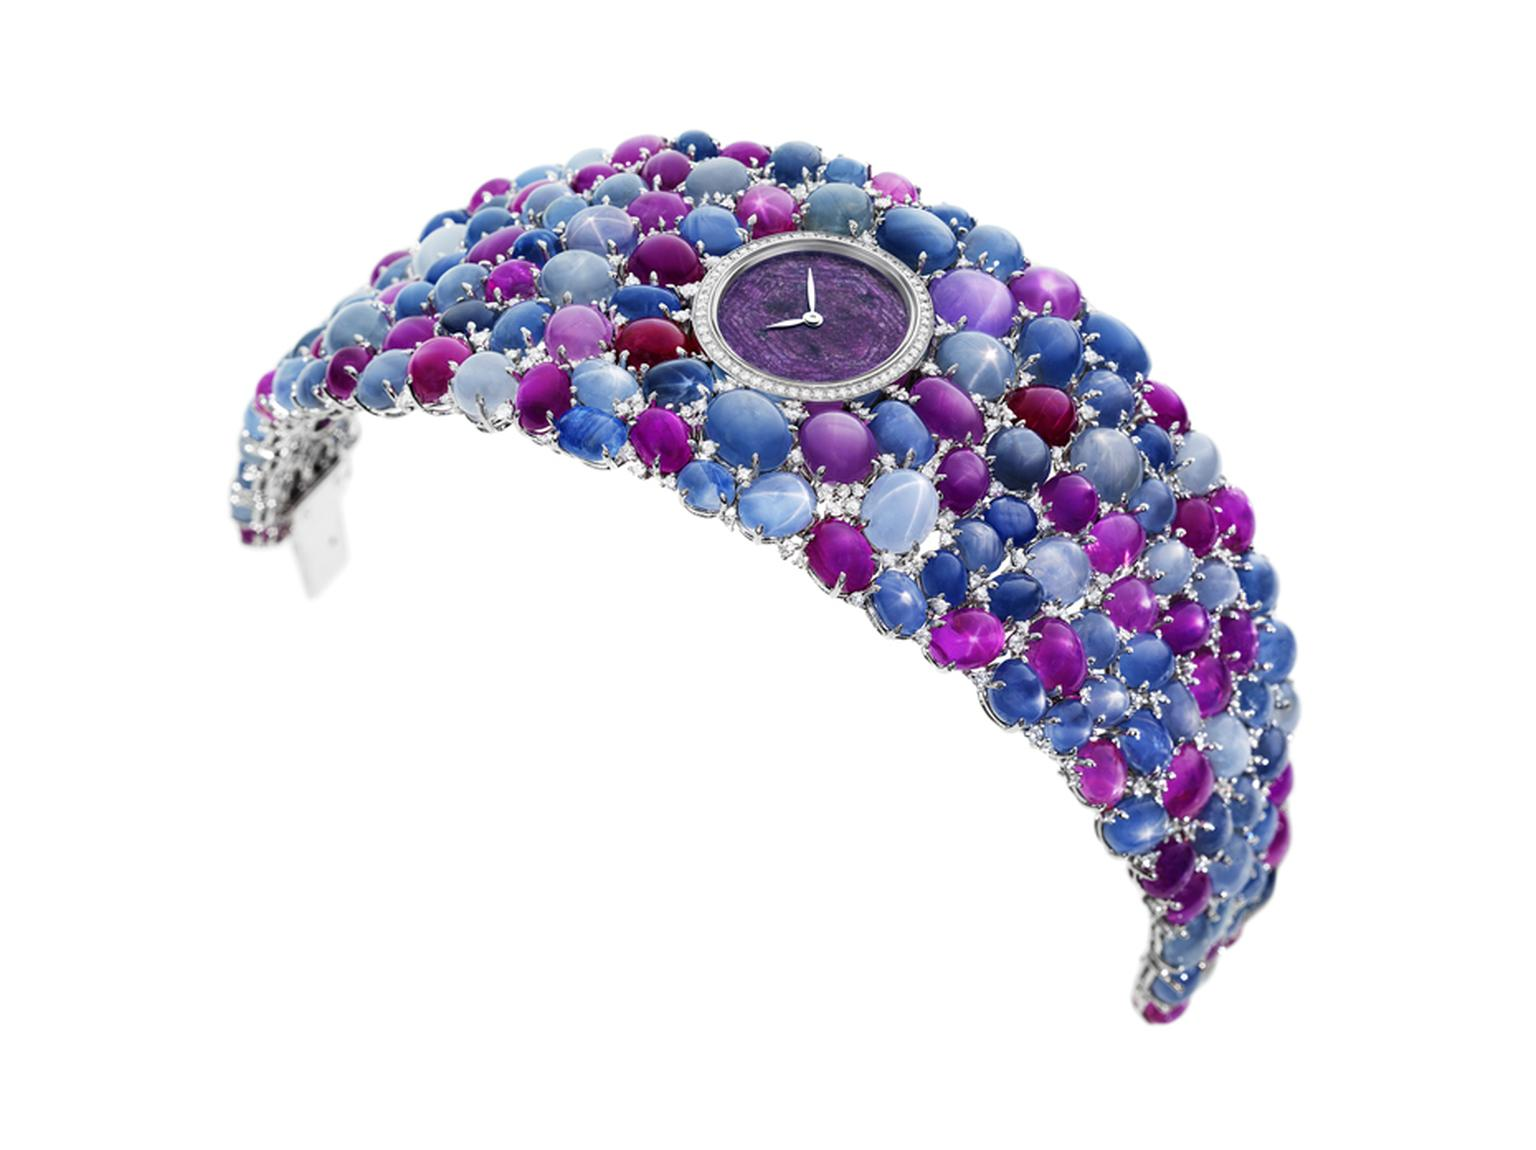 DeLaneau's Grace Stars jewellery watch is set with 118 star-cut rubies and sapphires as well as 276 diamonds